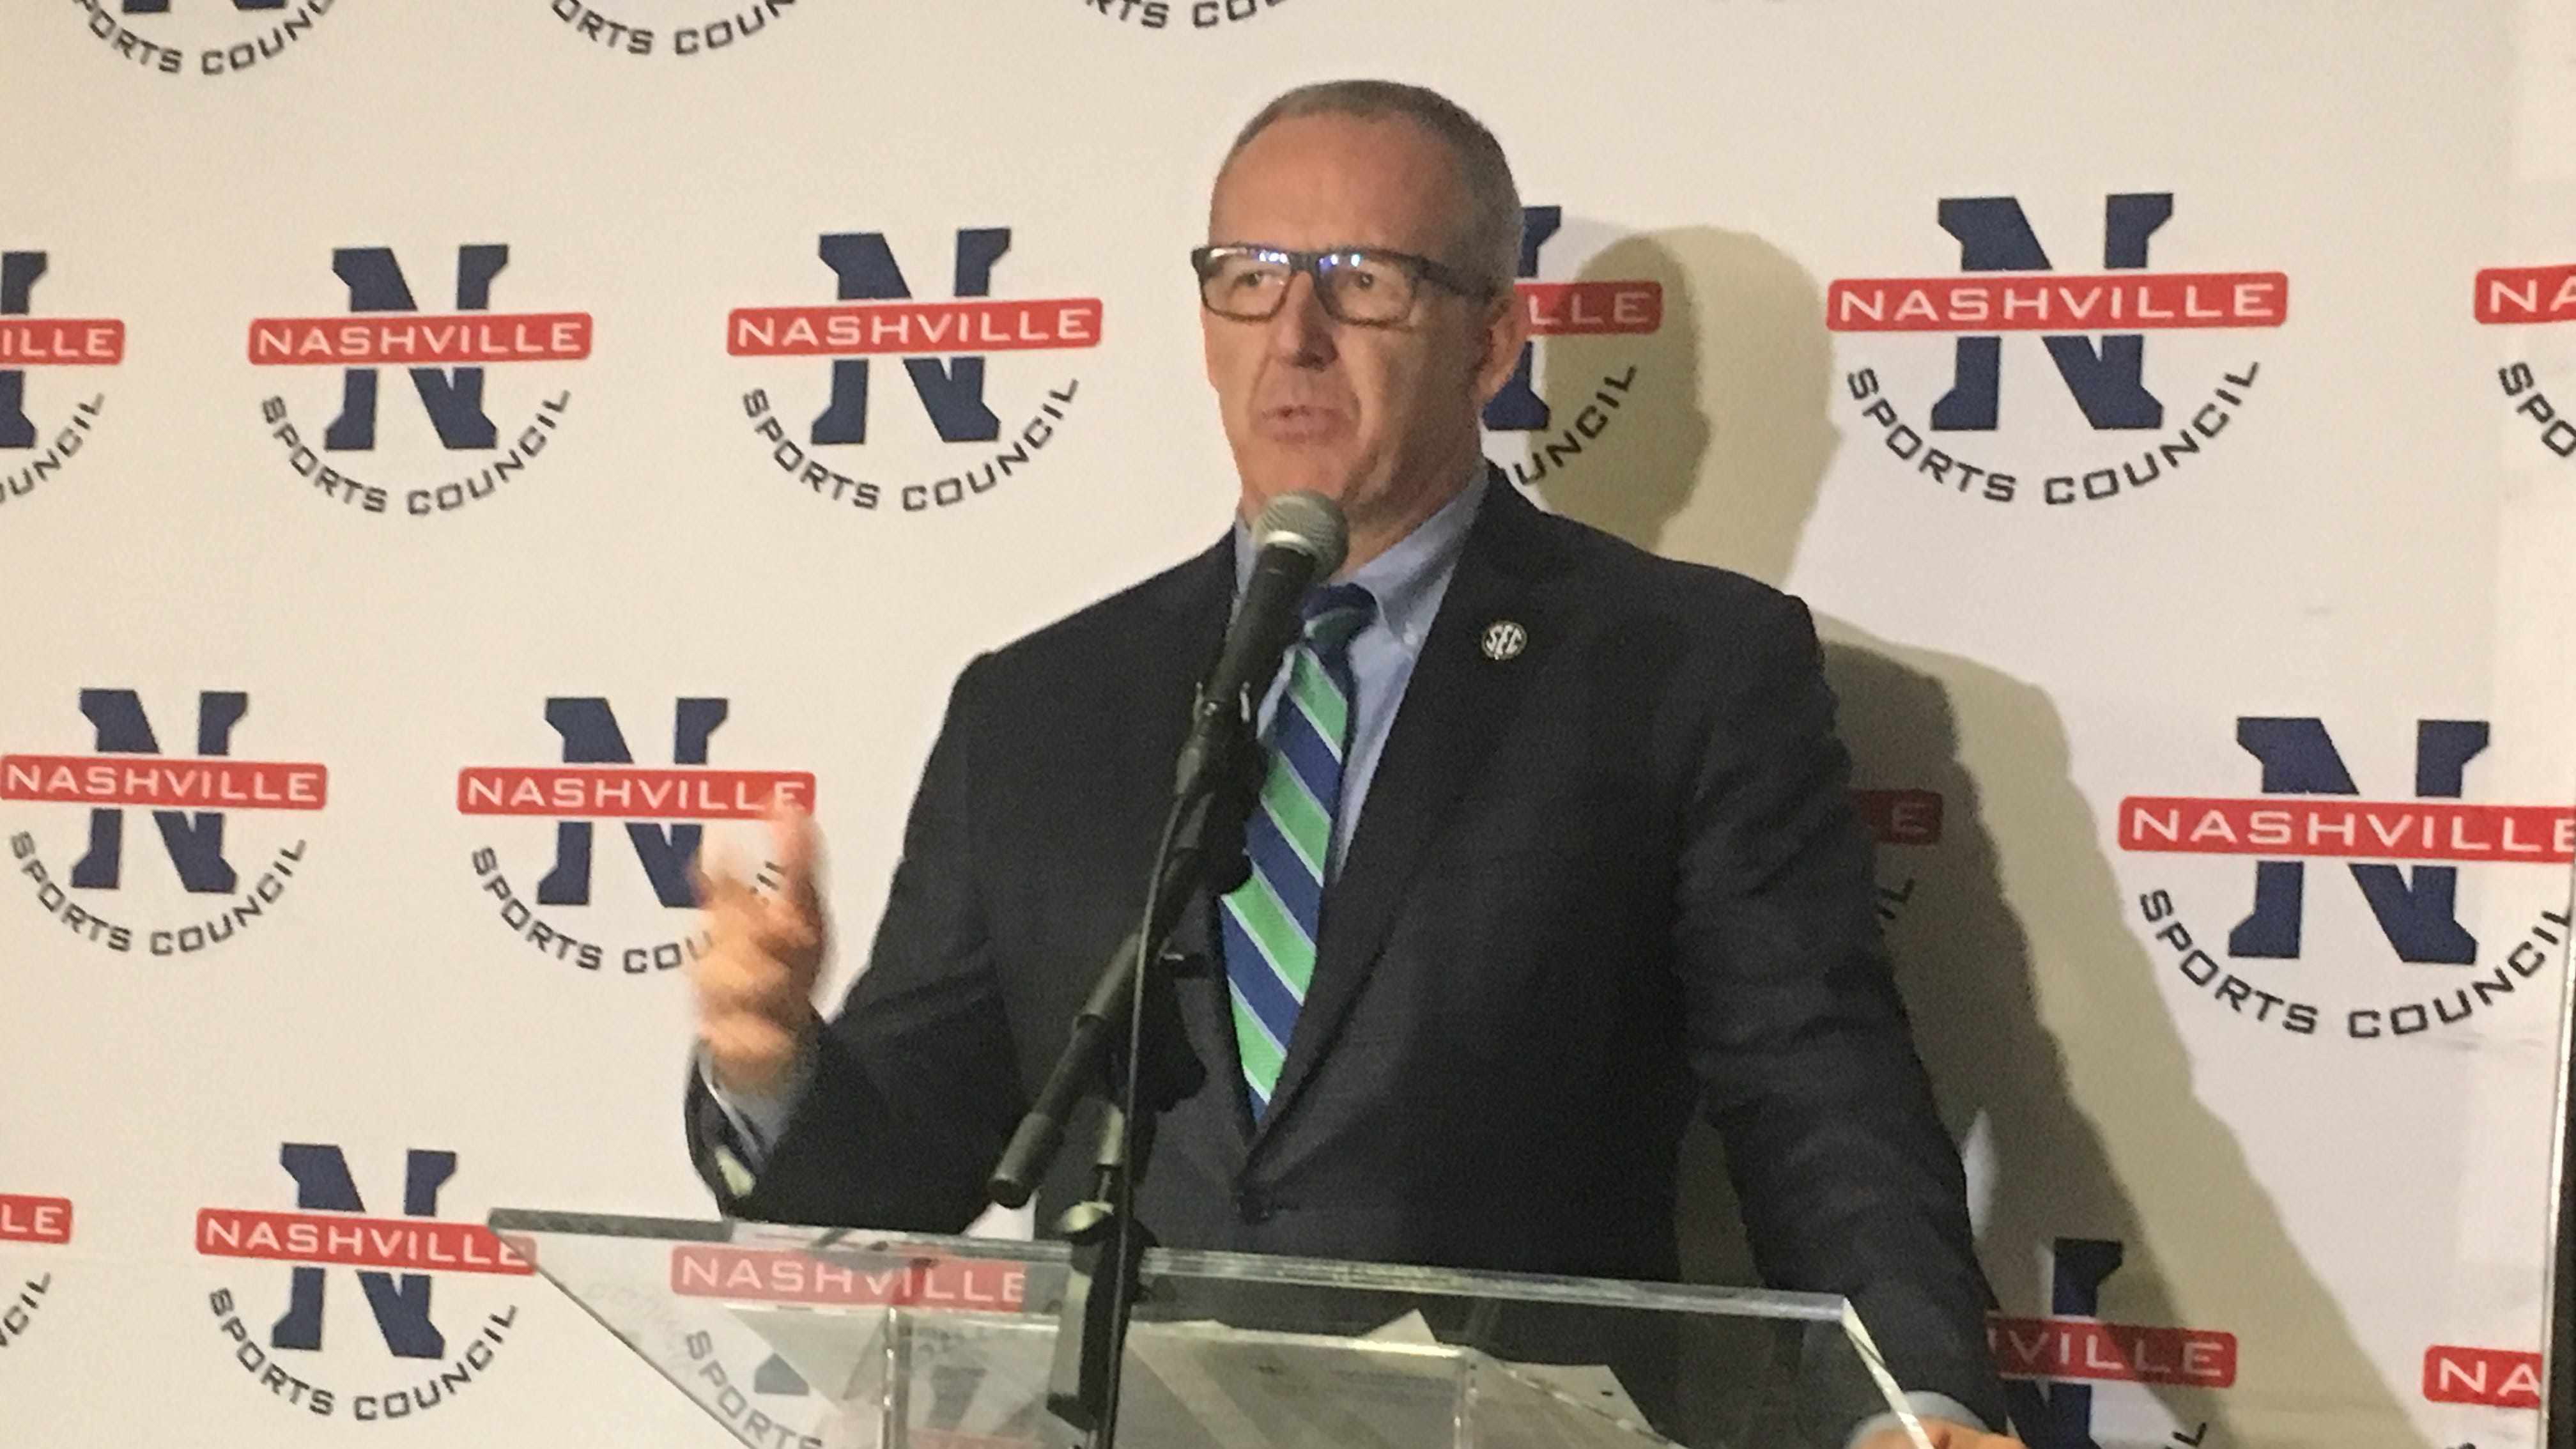 SEC commissioner Greg Sankey announced Wednesday that the SEC basketball tournament will be played in Nashville throughout 2035.